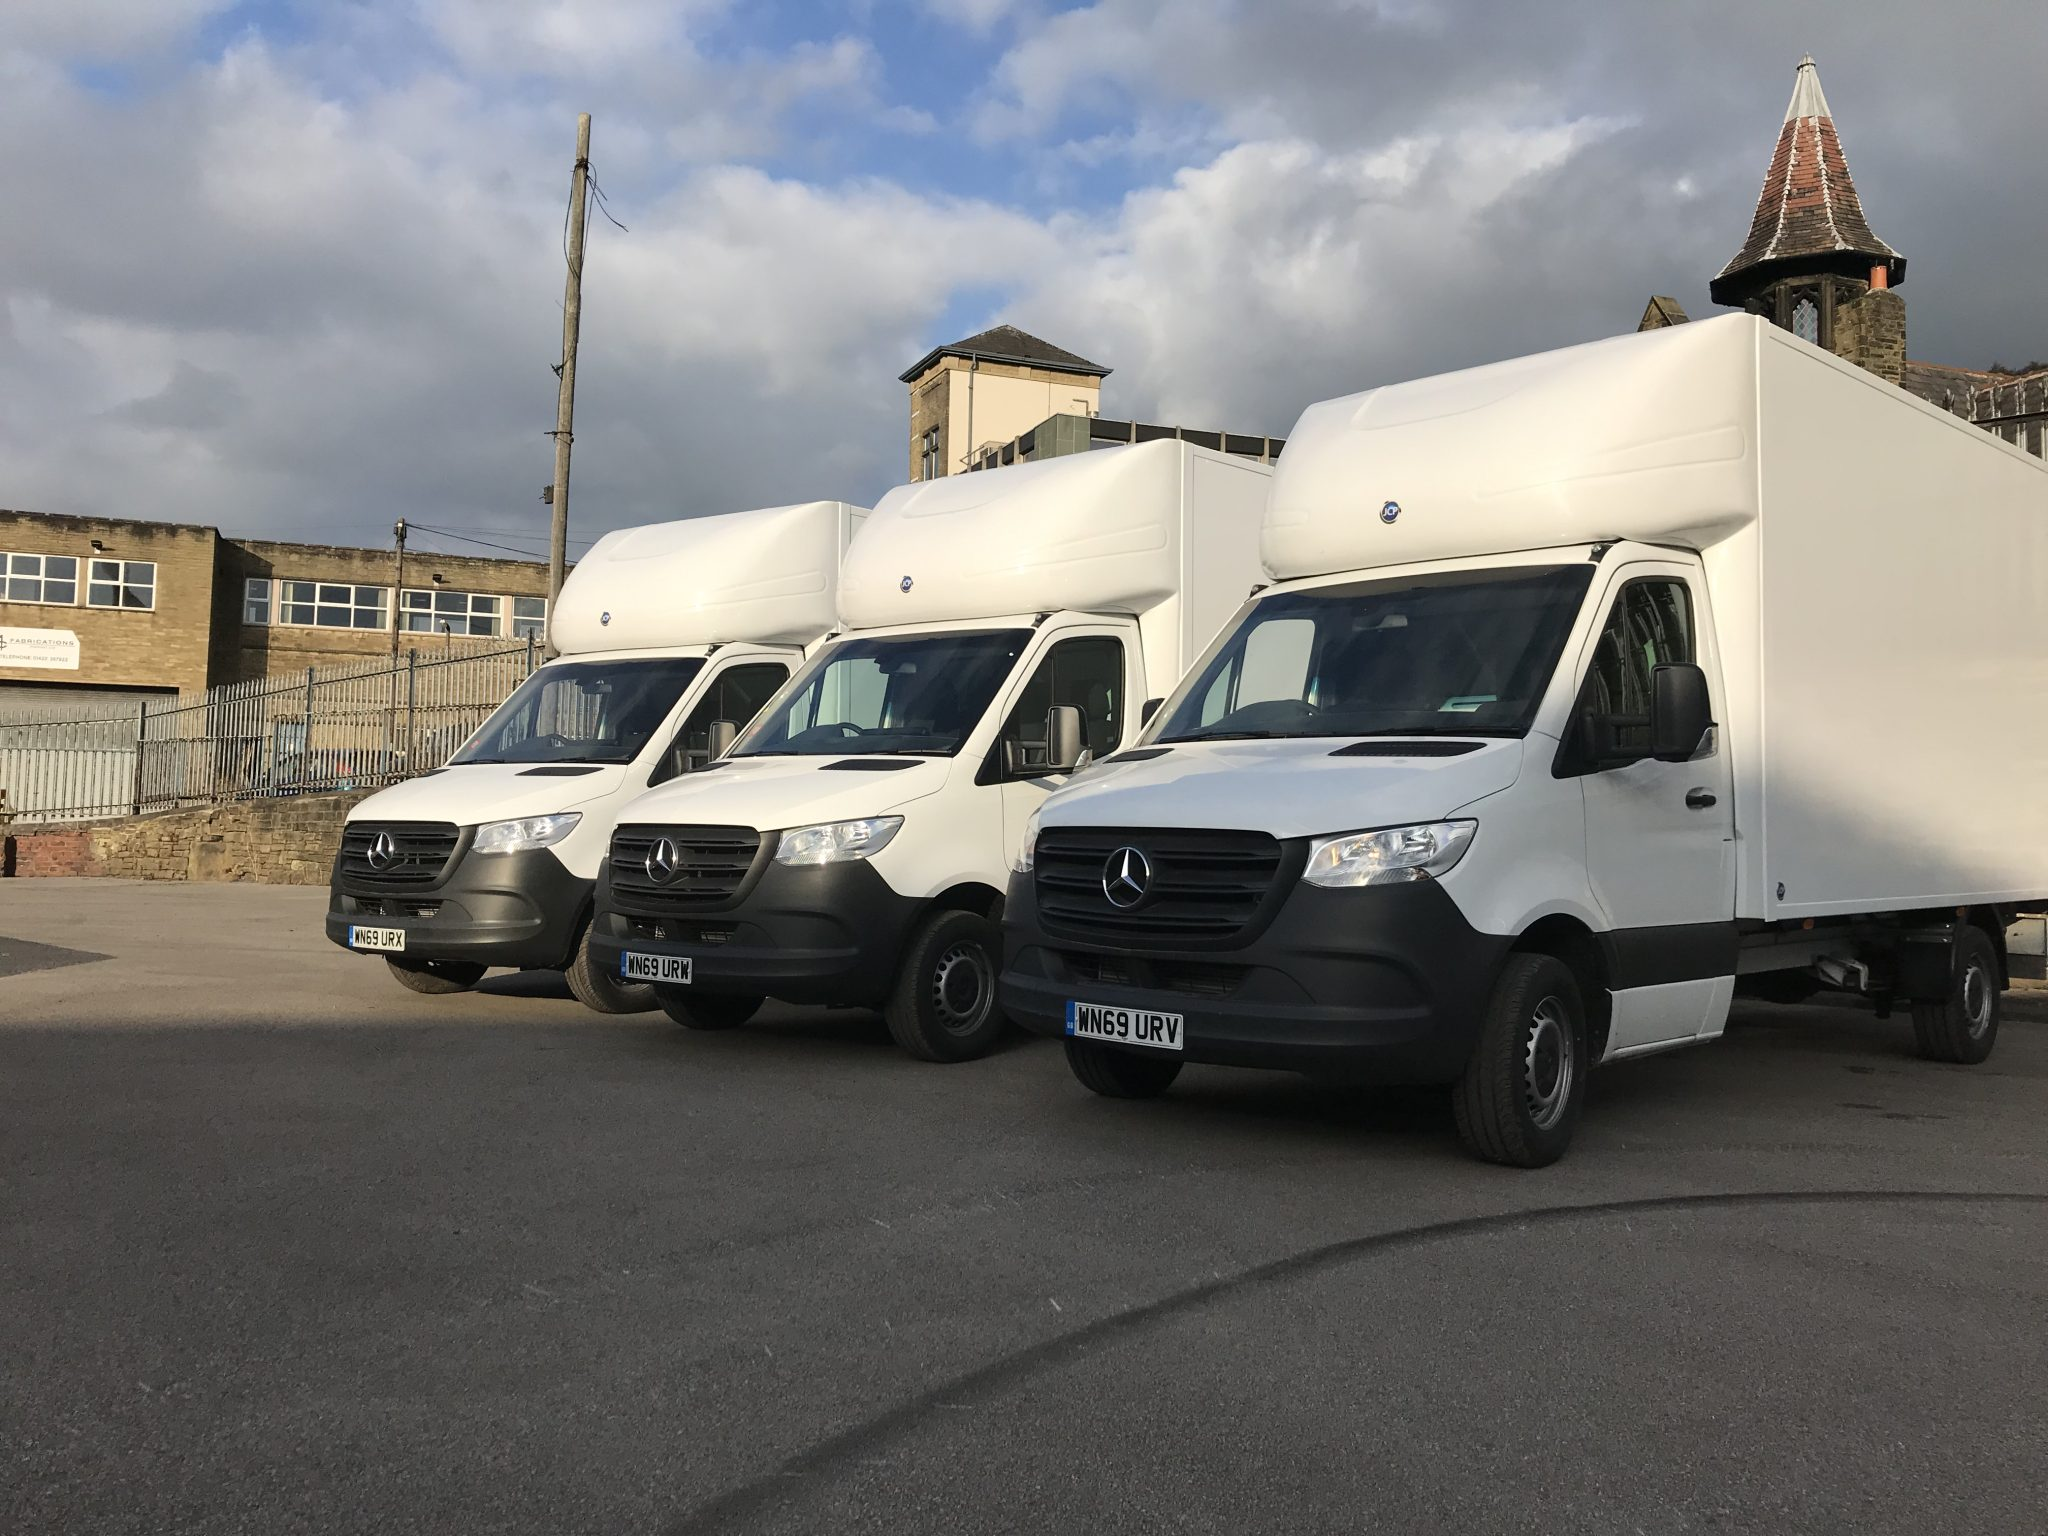 A fleet of white luton vans available for fleet services or lease